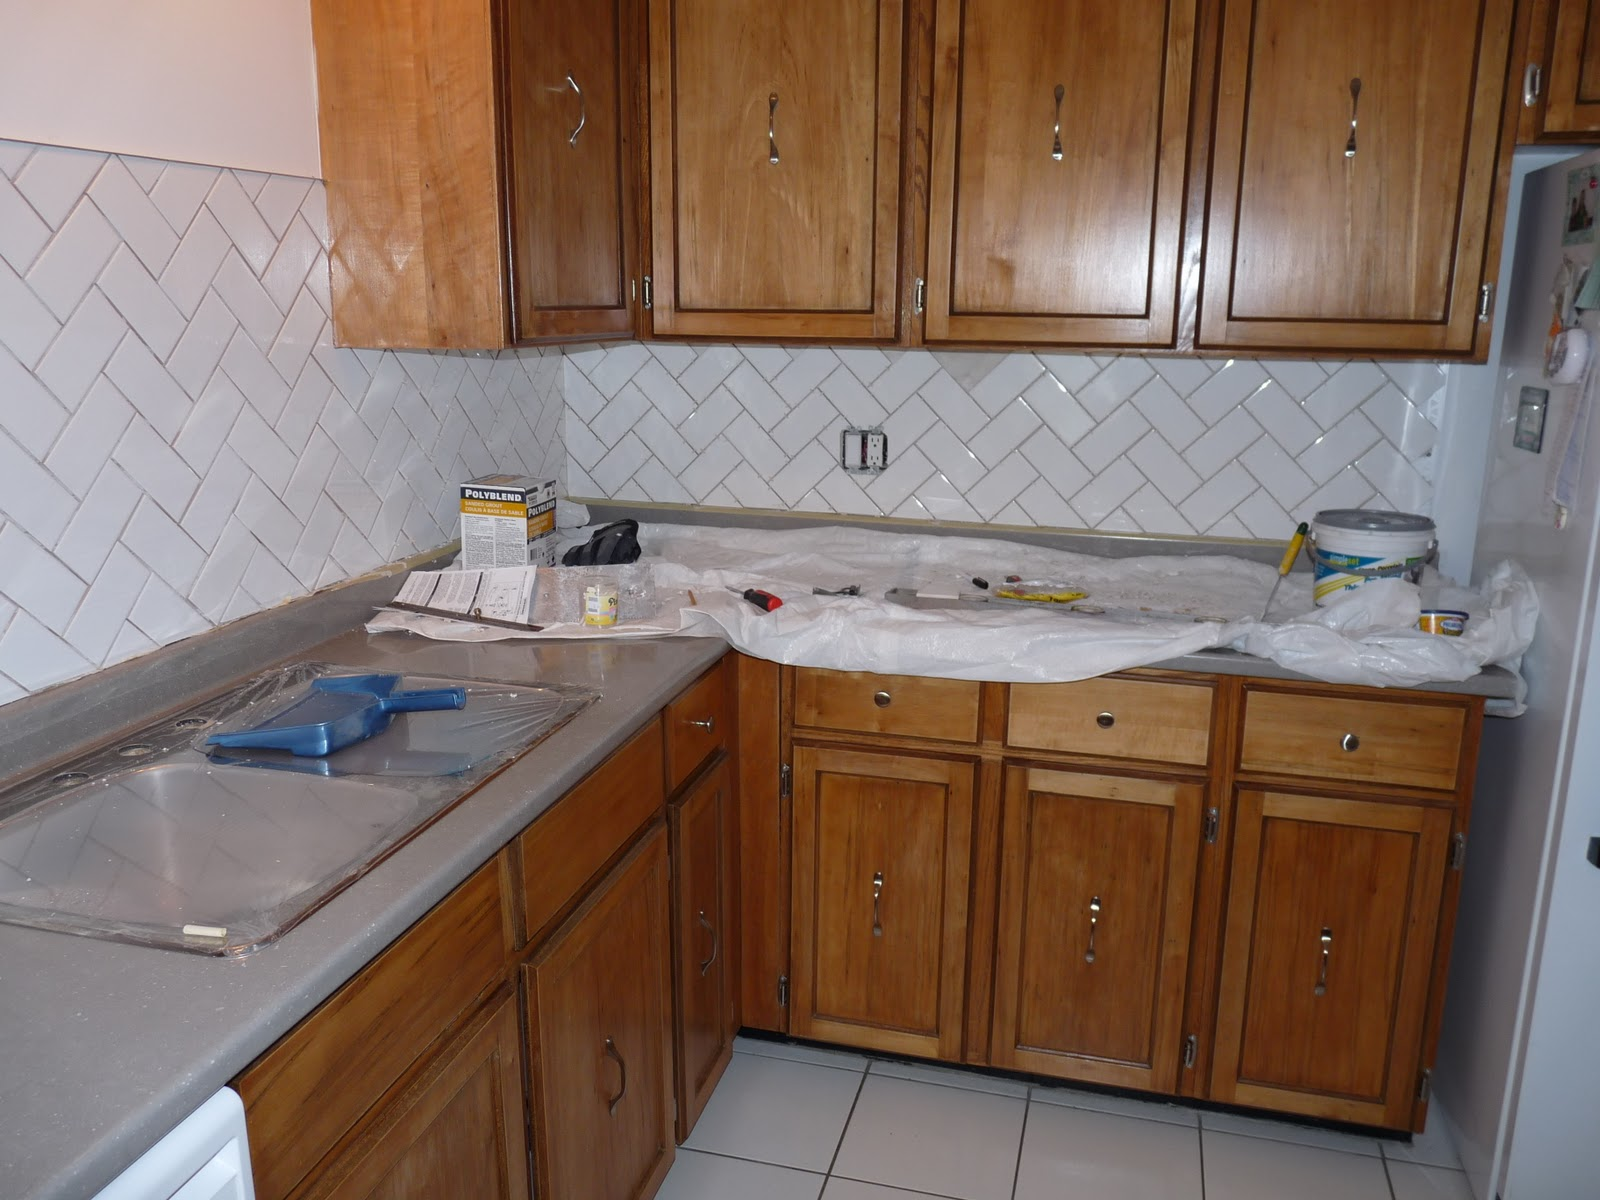 attractive Re Varnish Kitchen Cabinets #9: After the re-varnishing and onto the tiling. But look at those cabinets  gleam!